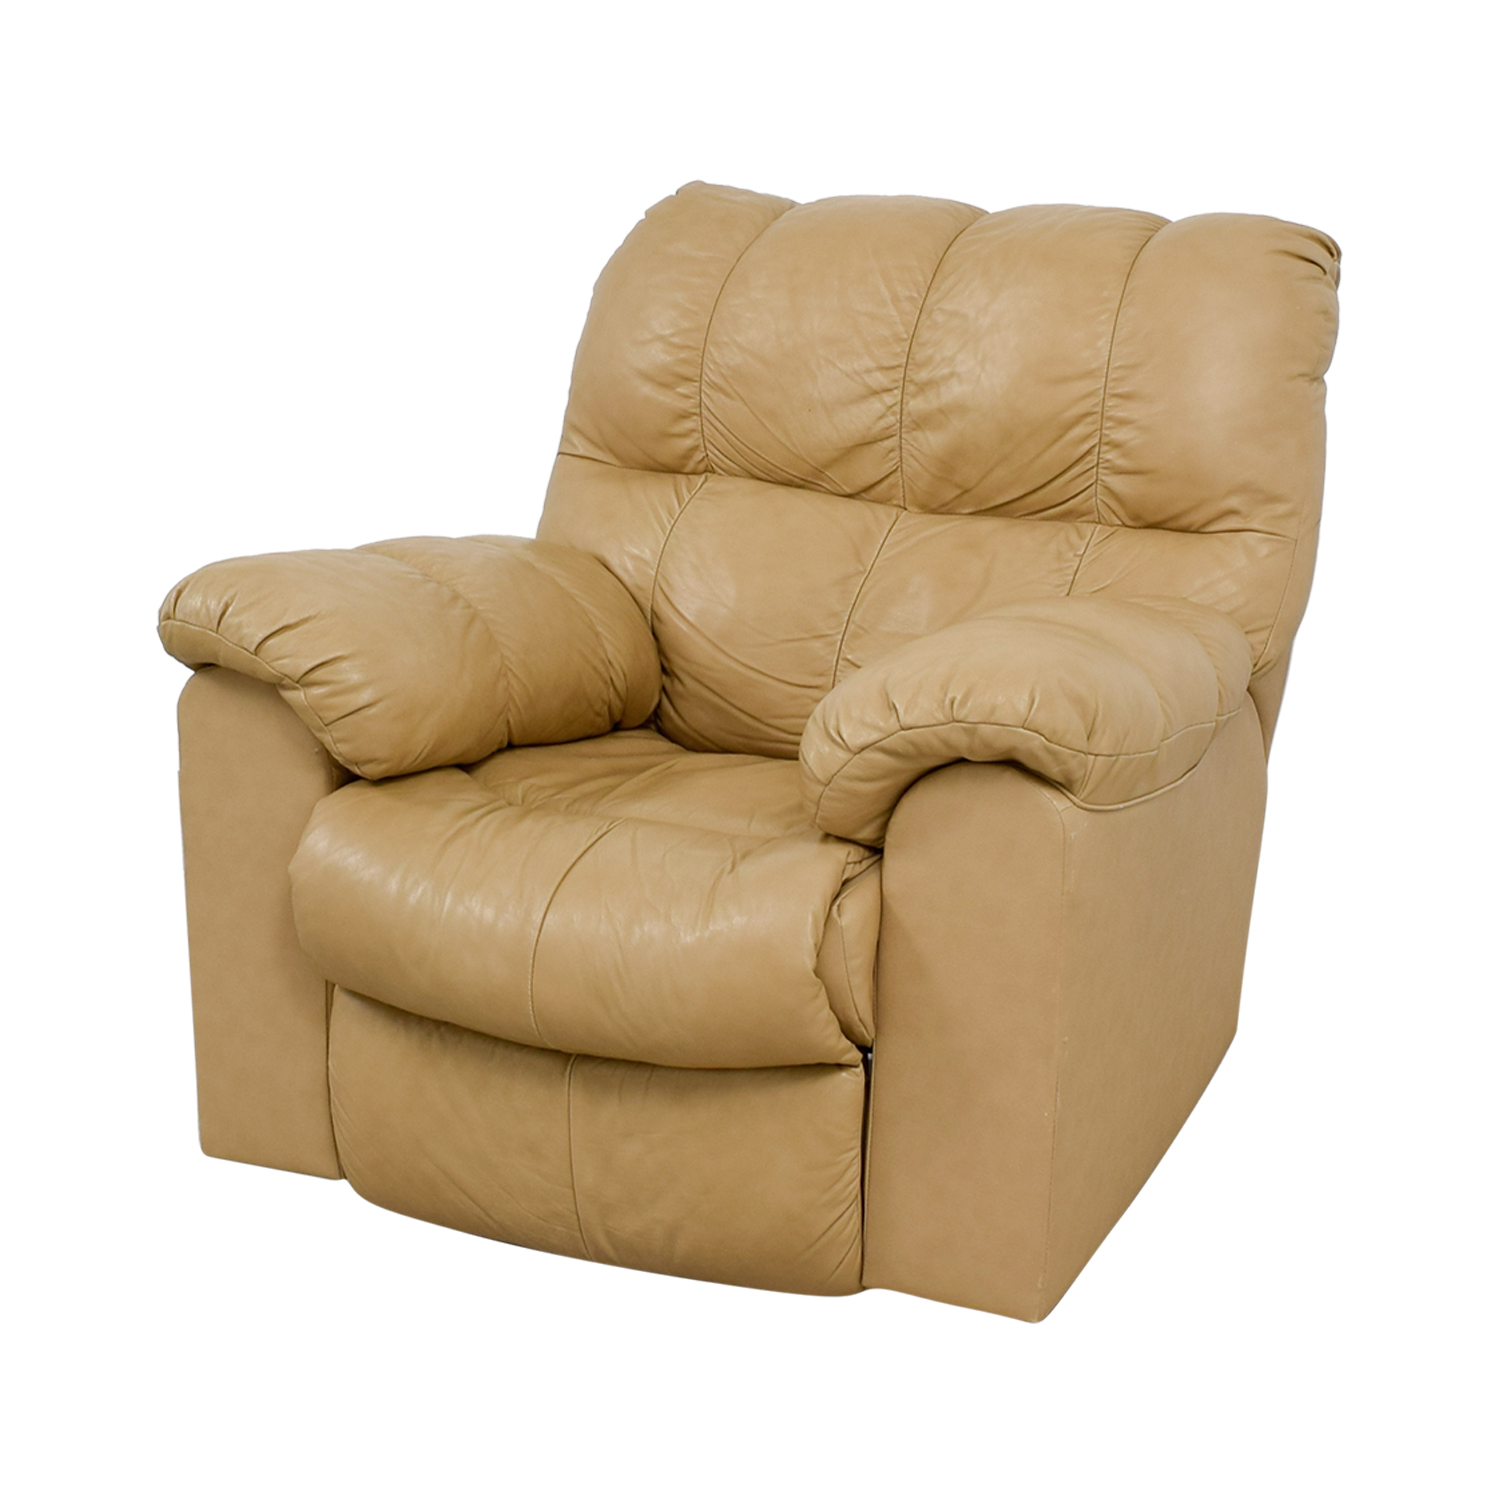 Ashley Recliner Chair 90 Off Ashley Furniture Ashley Furniture Tan Leather